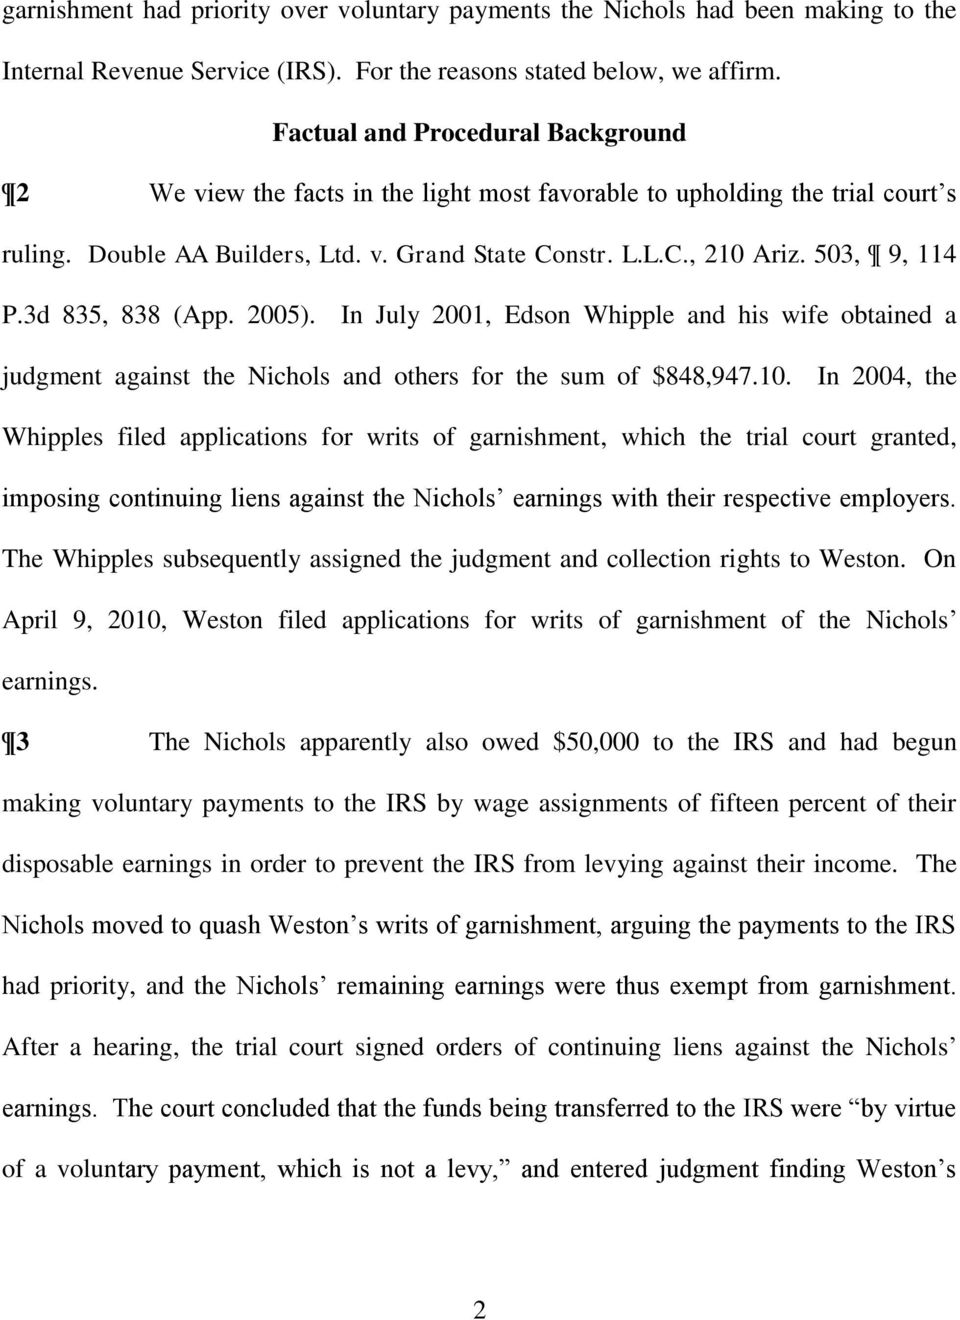 503, 9, 114 P.3d 835, 838 (App. 2005). In July 2001, Edson Whipple and his wife obtained a judgment against the Nichols and others for the sum of $848,947.10.